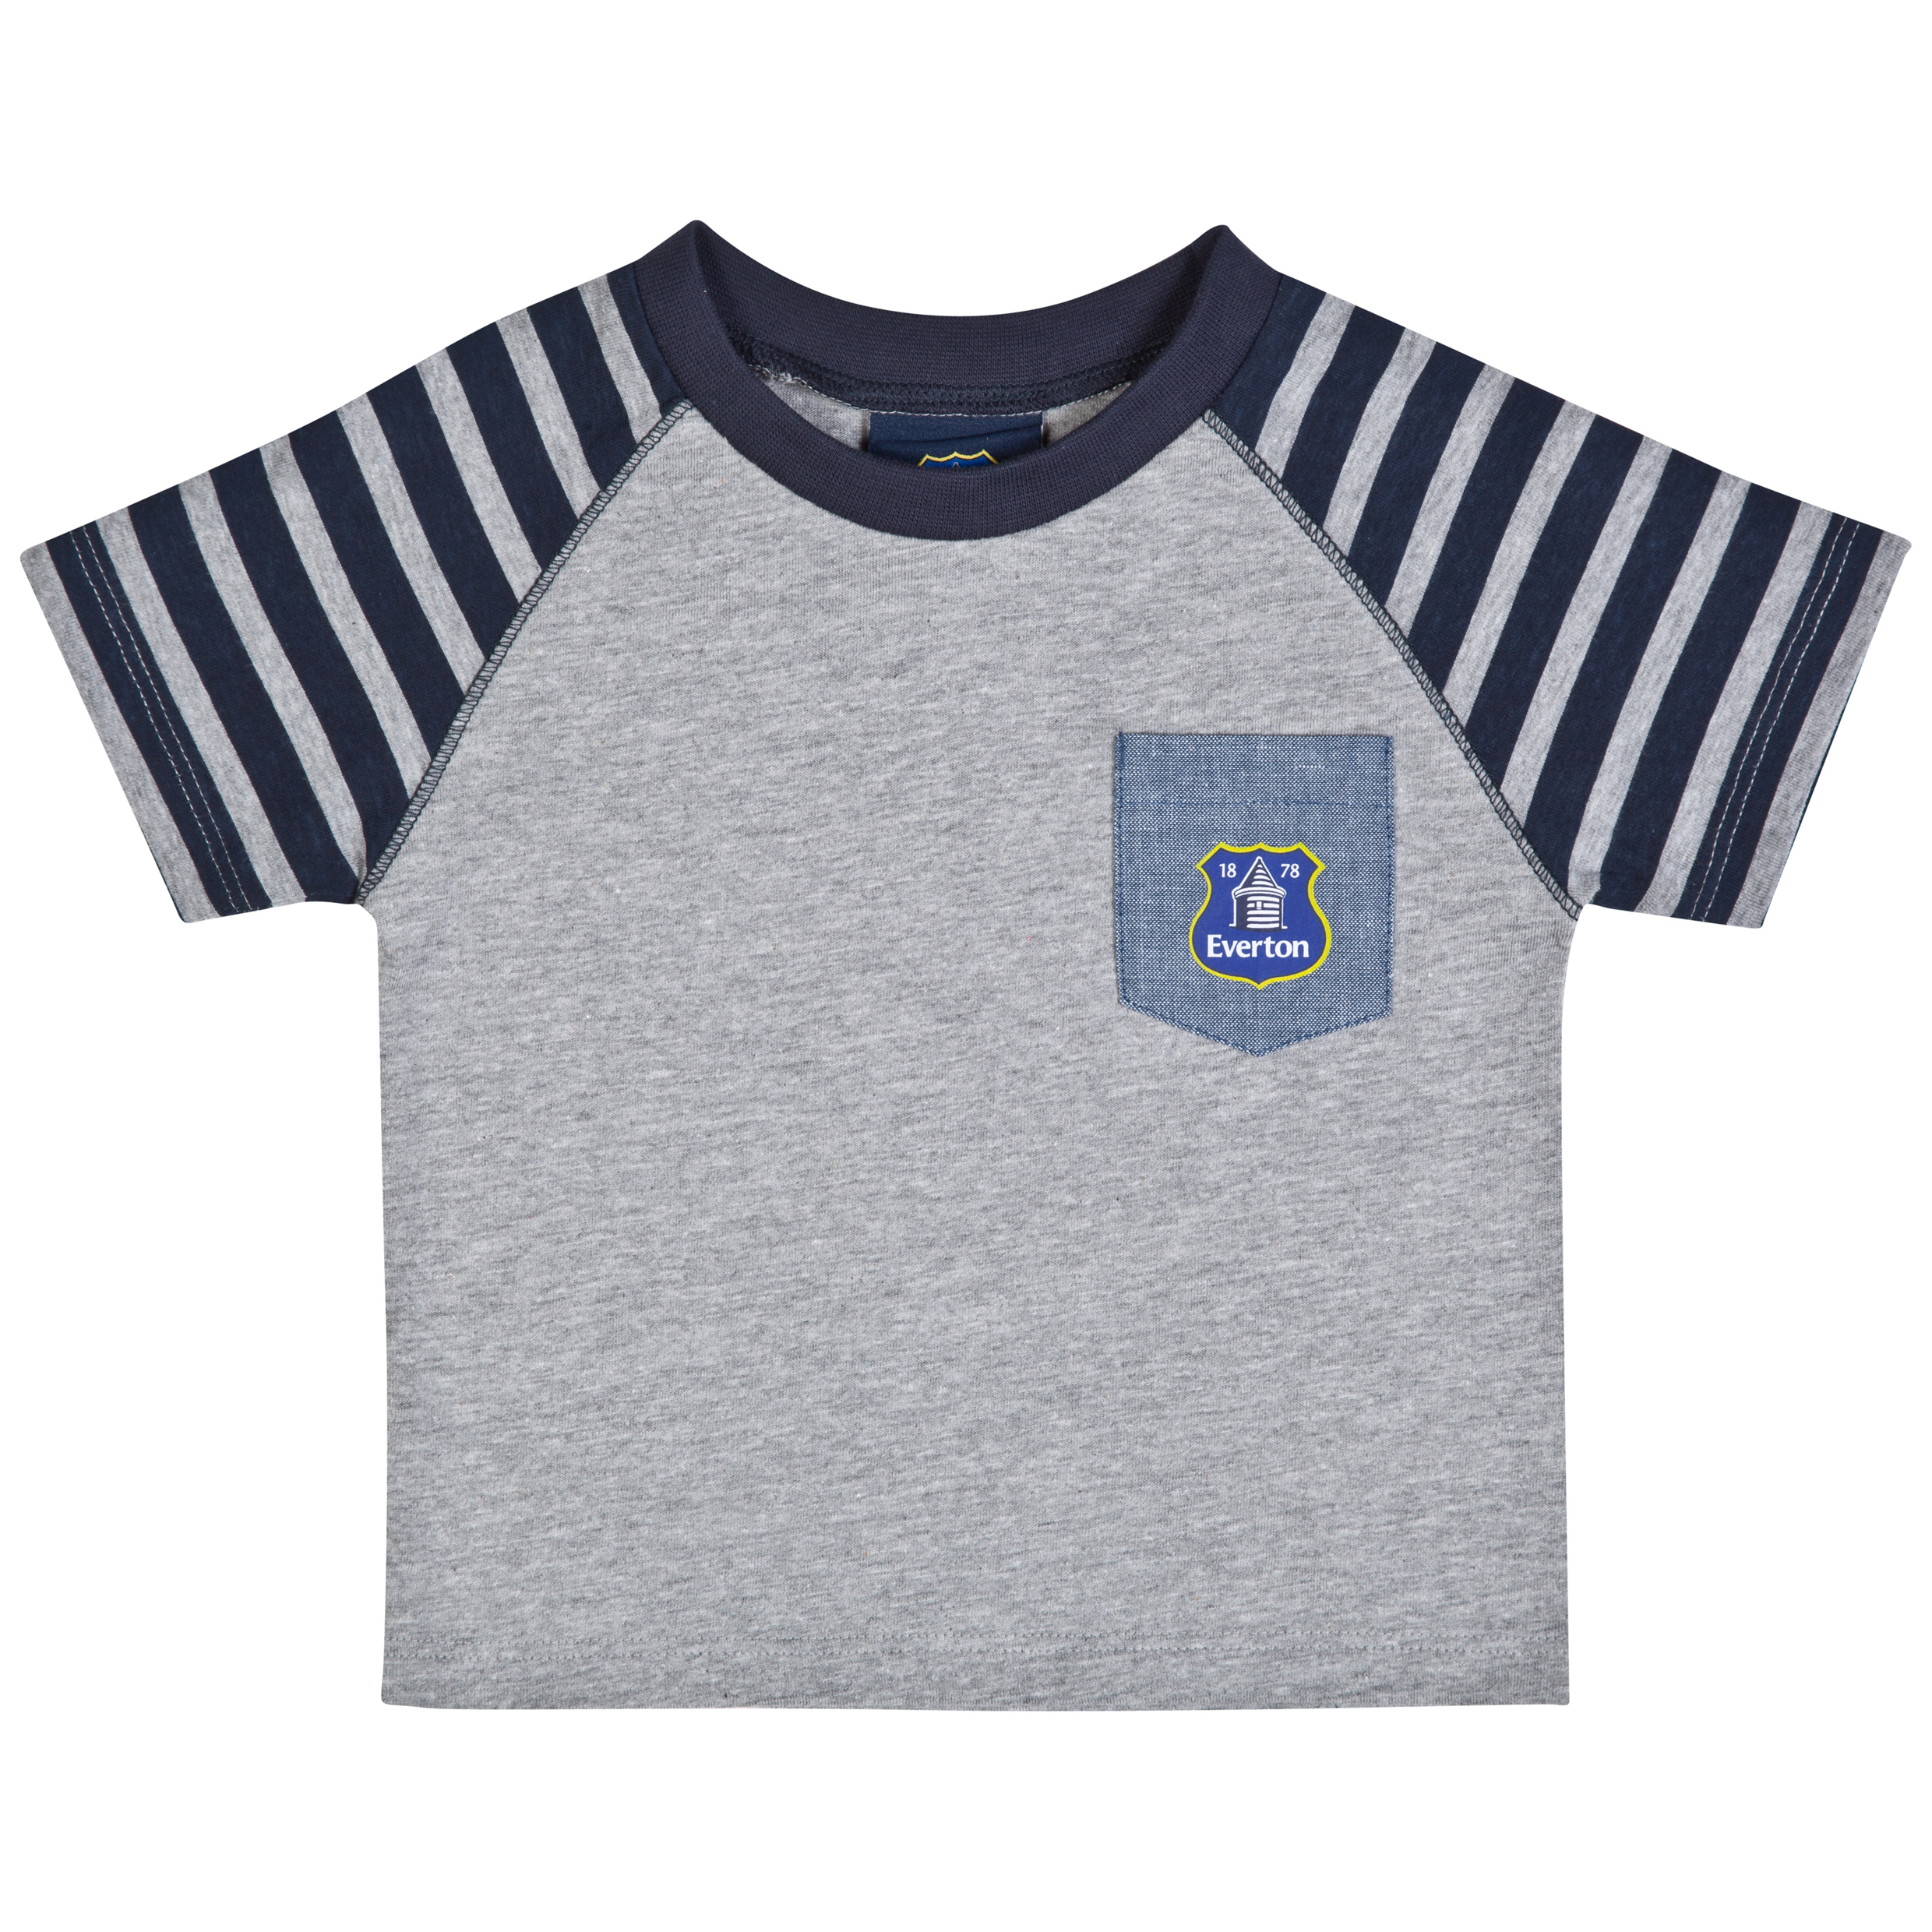 Everton One T-Shirt-Baby Lt Grey